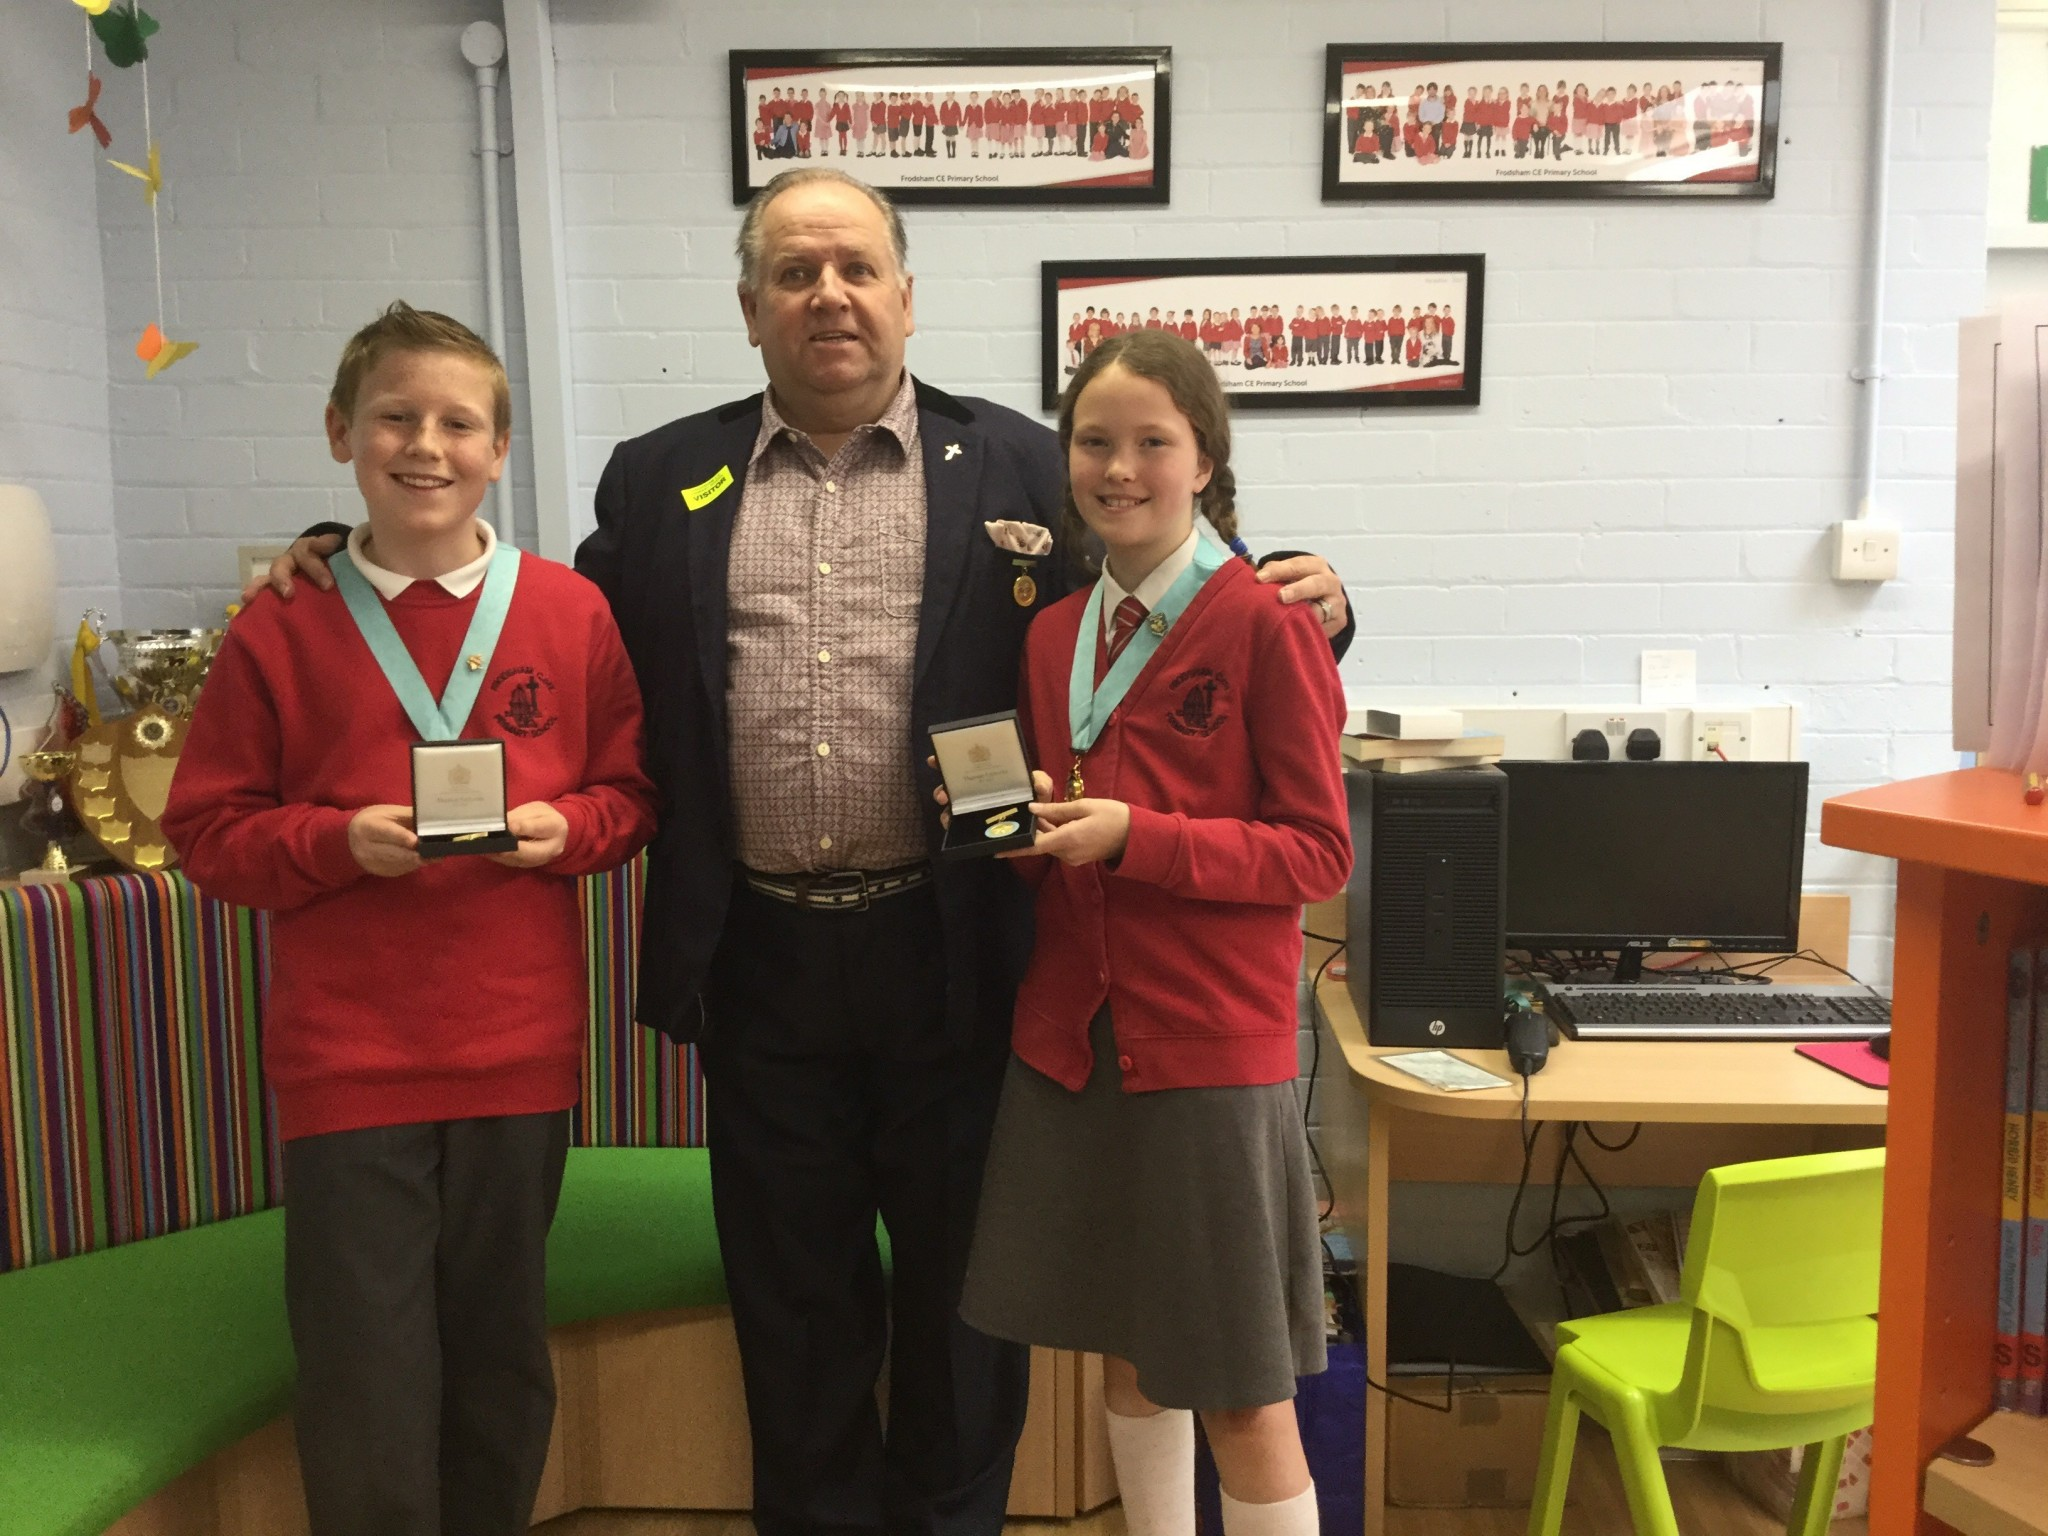 Past Mayor hands gifts to the Junior Mayors